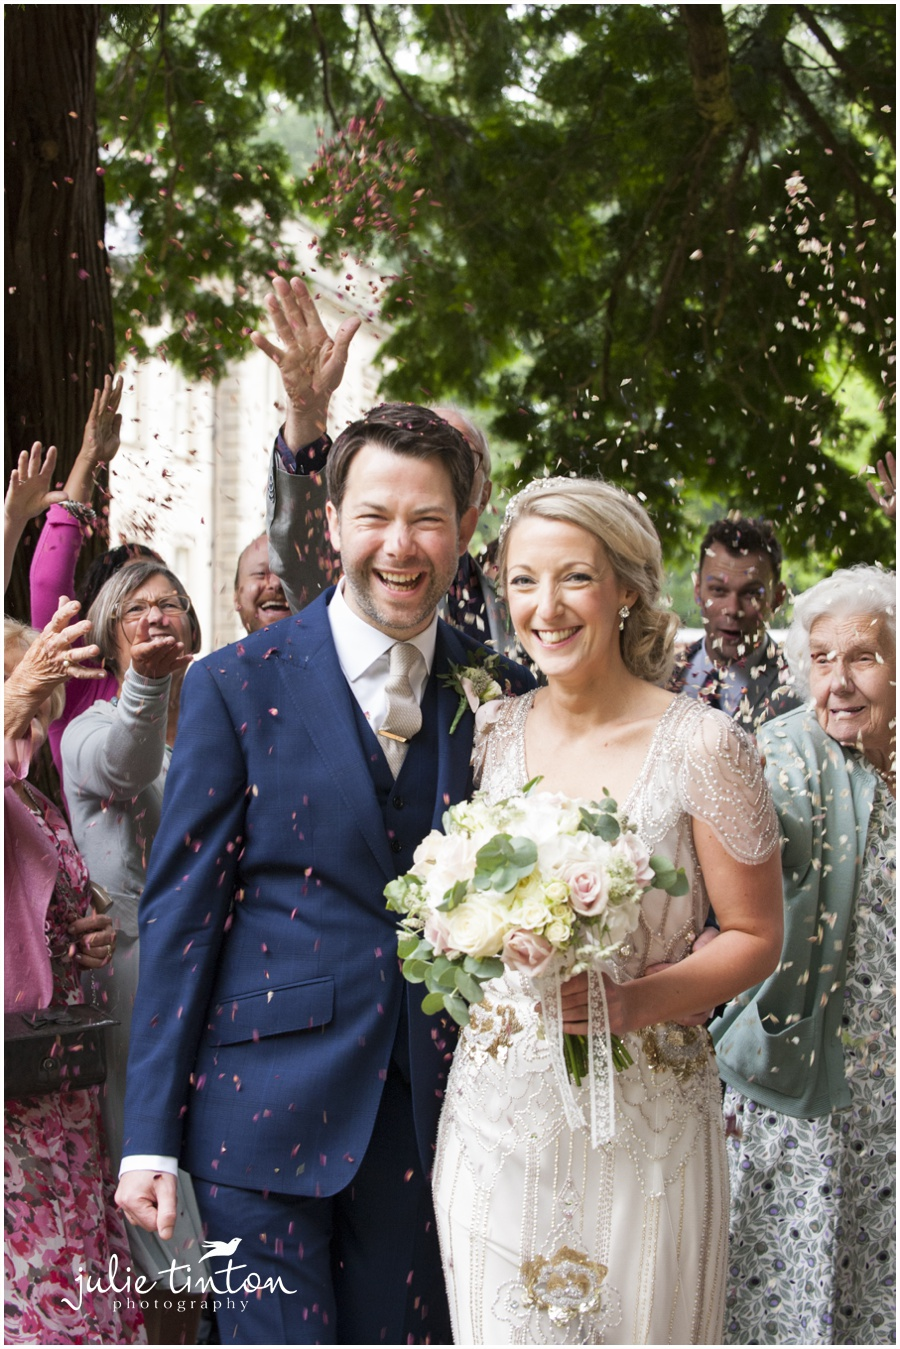 Stylish Eshott Hall Wedding